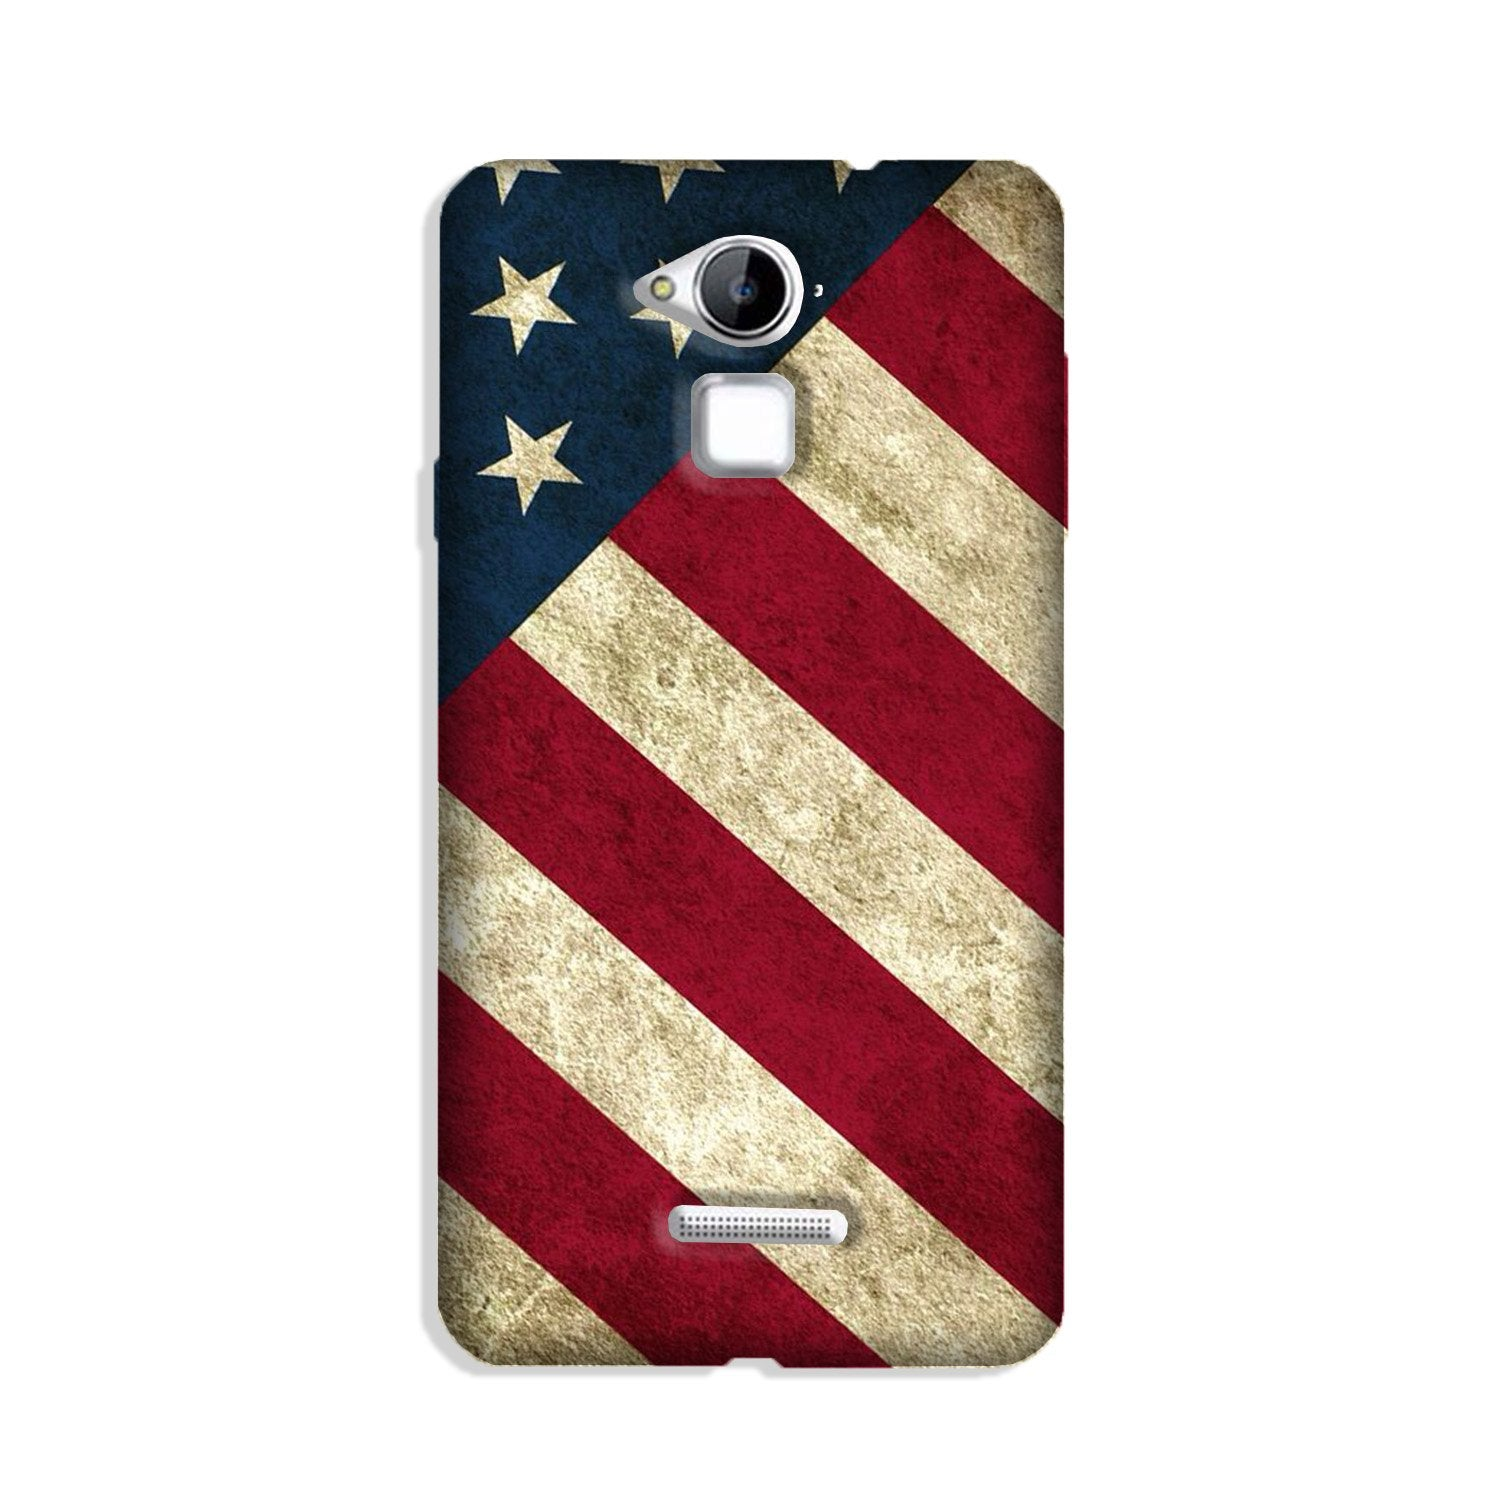 America Case for Coolpad Note 3